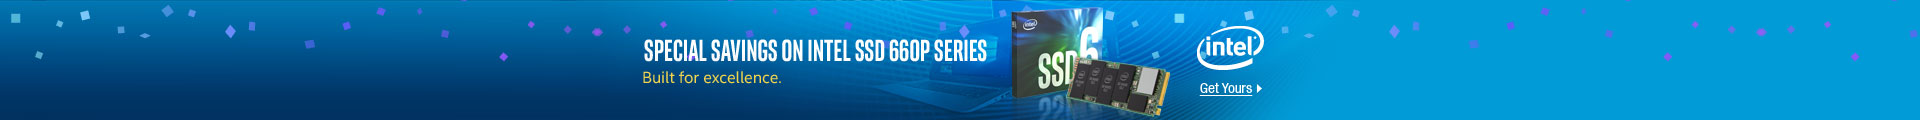 SPECIAL SAVINGS ON INTEL SSD 660P SERIES